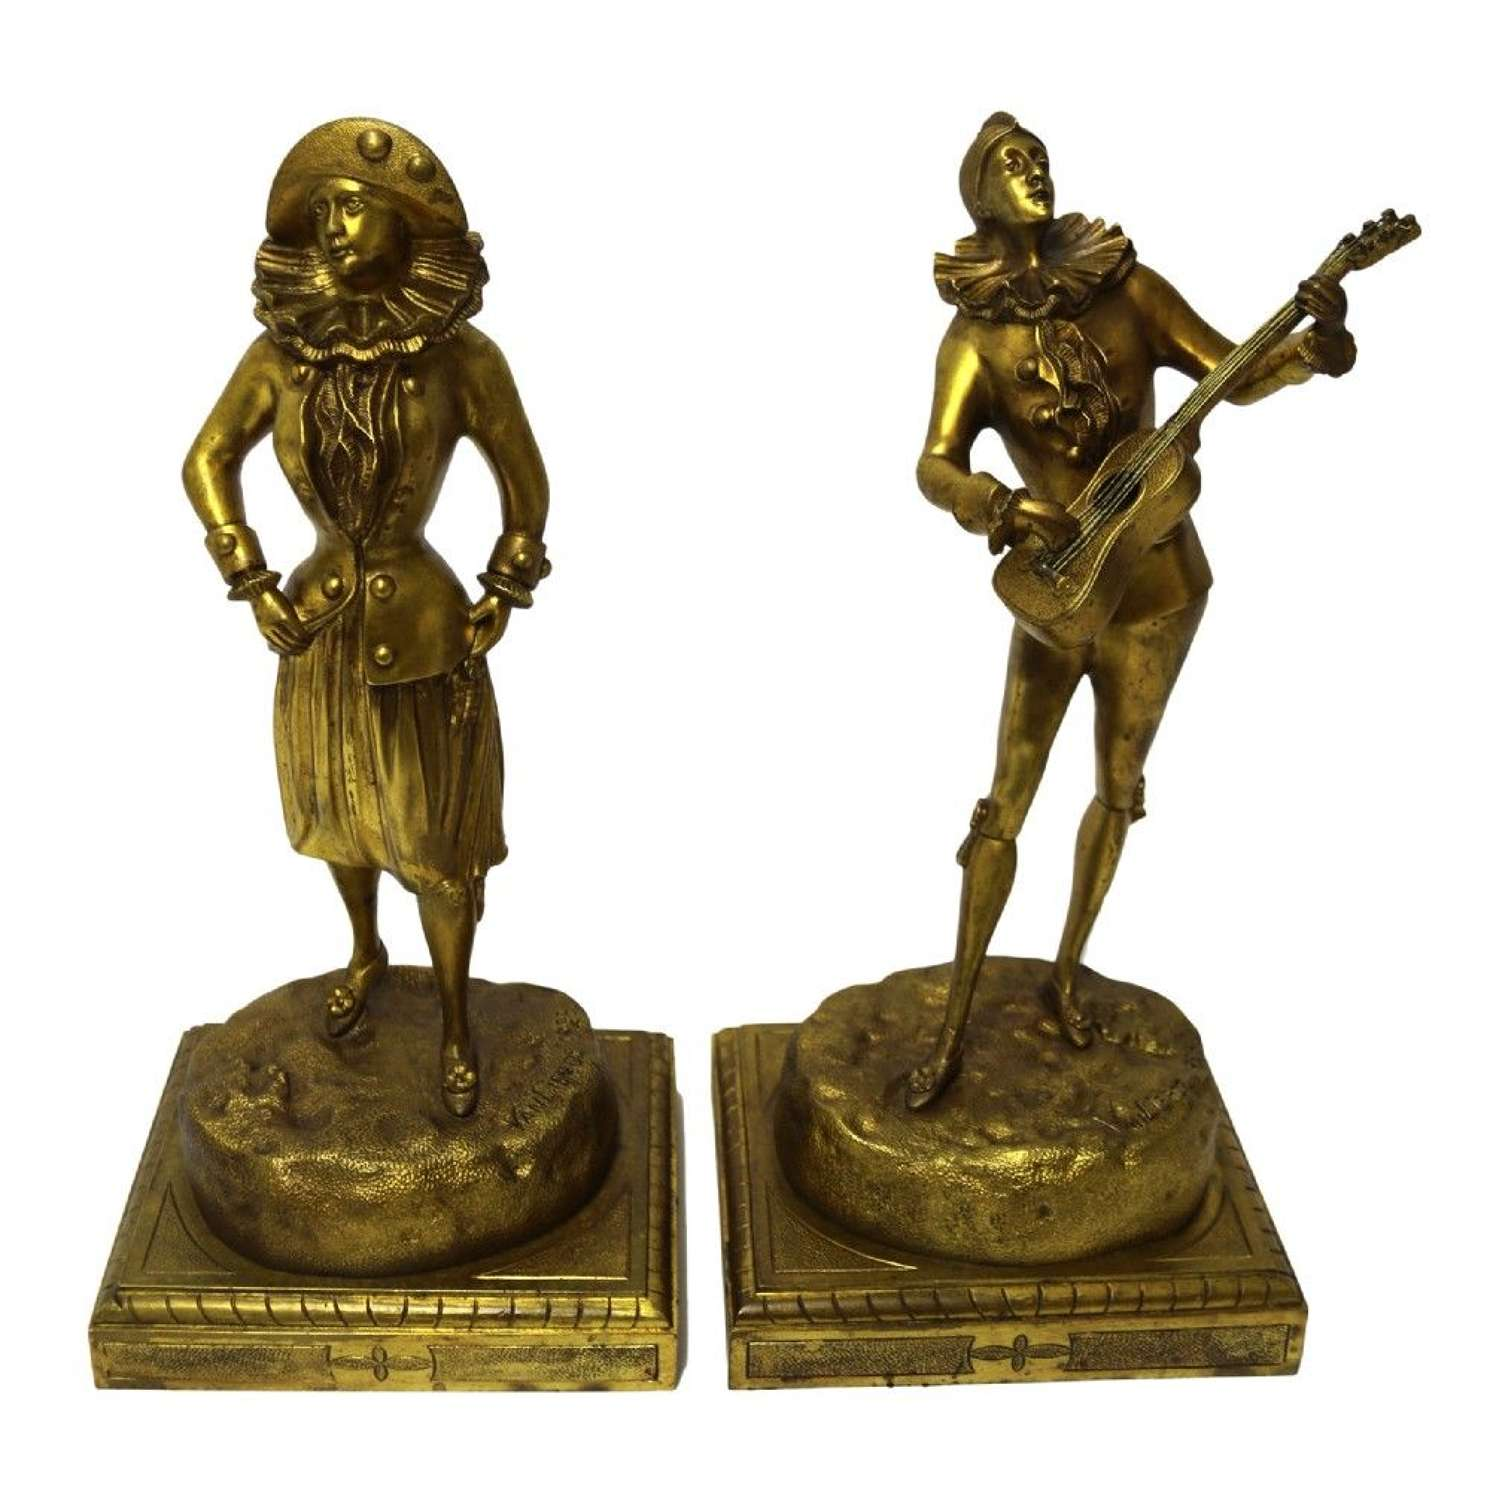 A Rare Pair Of French Bronze Figures By Van Lierde